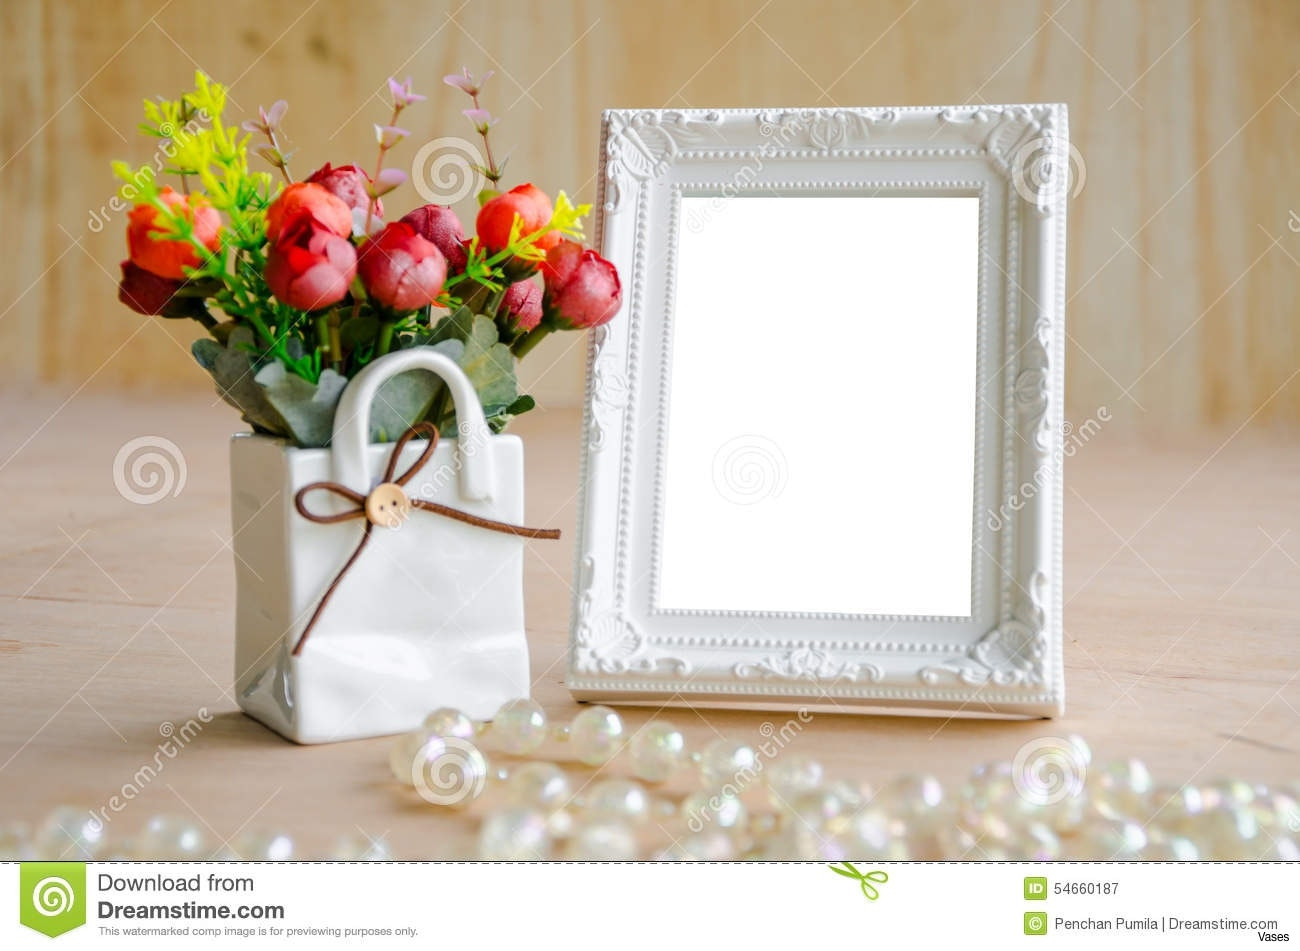 picture frame vase of luxury best out of waste cd photo frame photo frames collection regarding flowers vase blank white picture frame wooden background clipping path 54660187h vases royalty free stock photoi